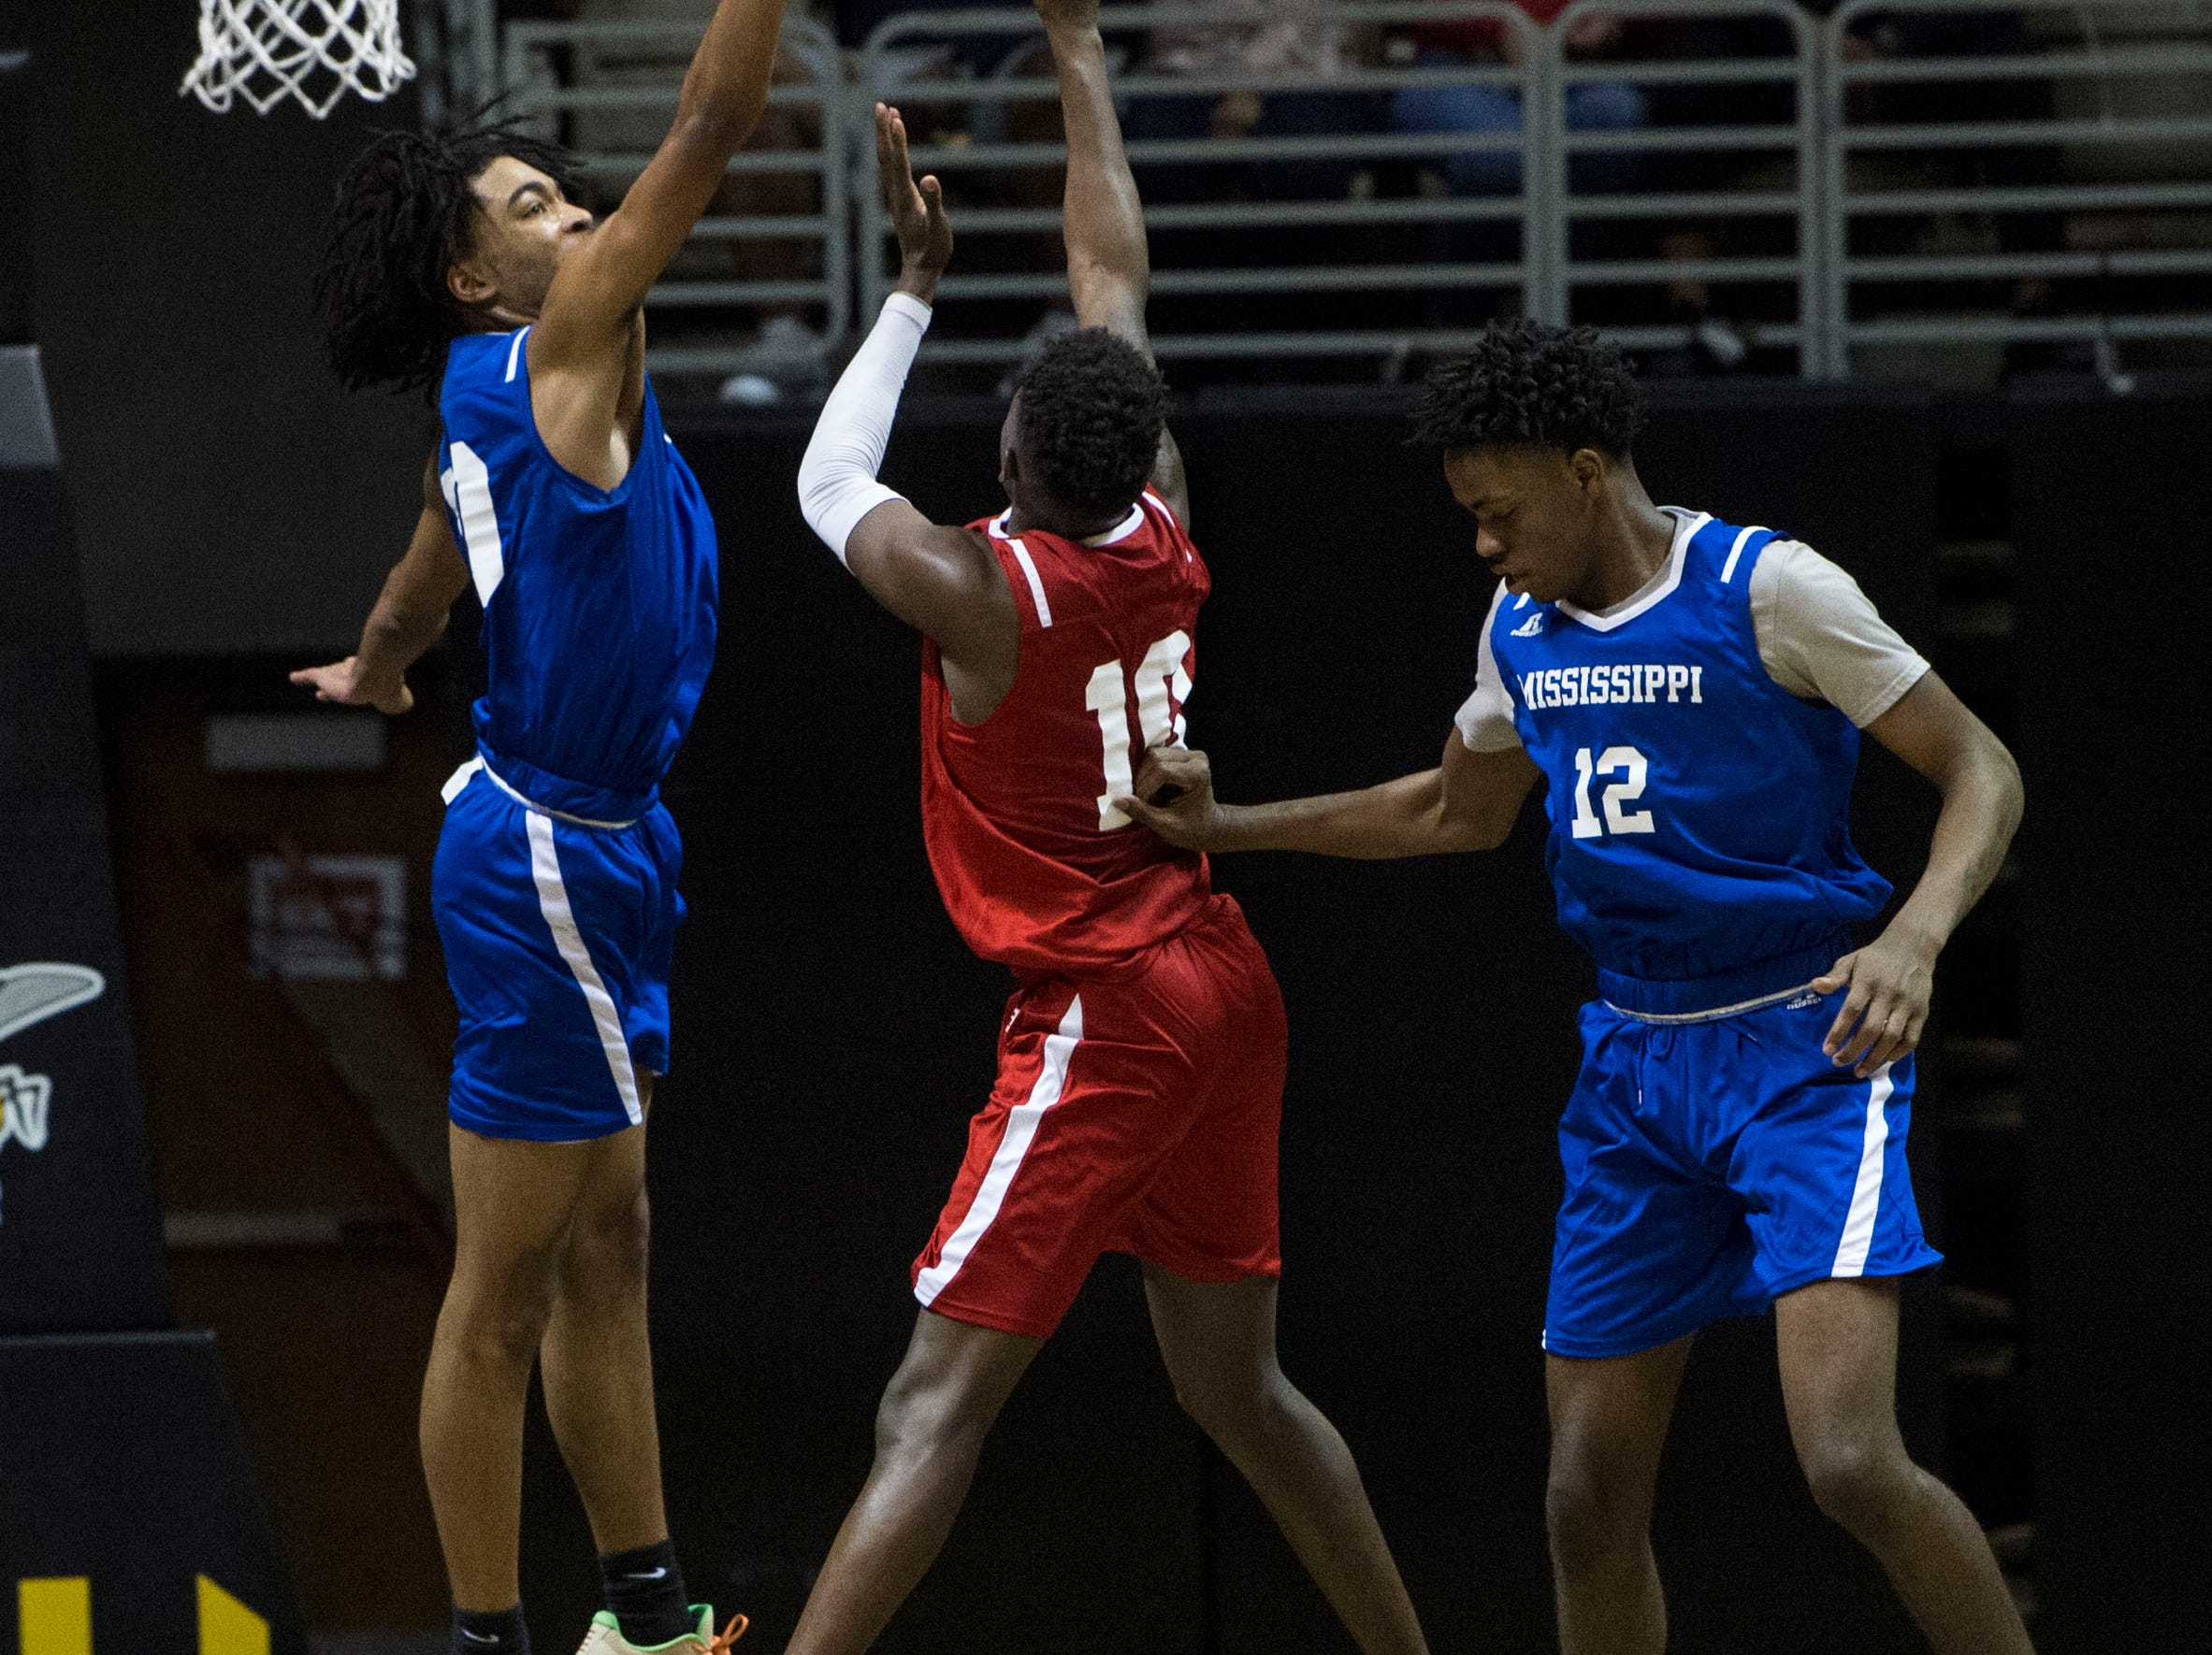 Alabama's Desmond Williams (10) goes up for a layup during the Alabama-Mississippi All-Star game at the Dunn-Oliver Acadome in Montgomery, Ala., on Friday, March 15, 2019. Alabama All-stars defeated the Mississippi All-stars 107-90.